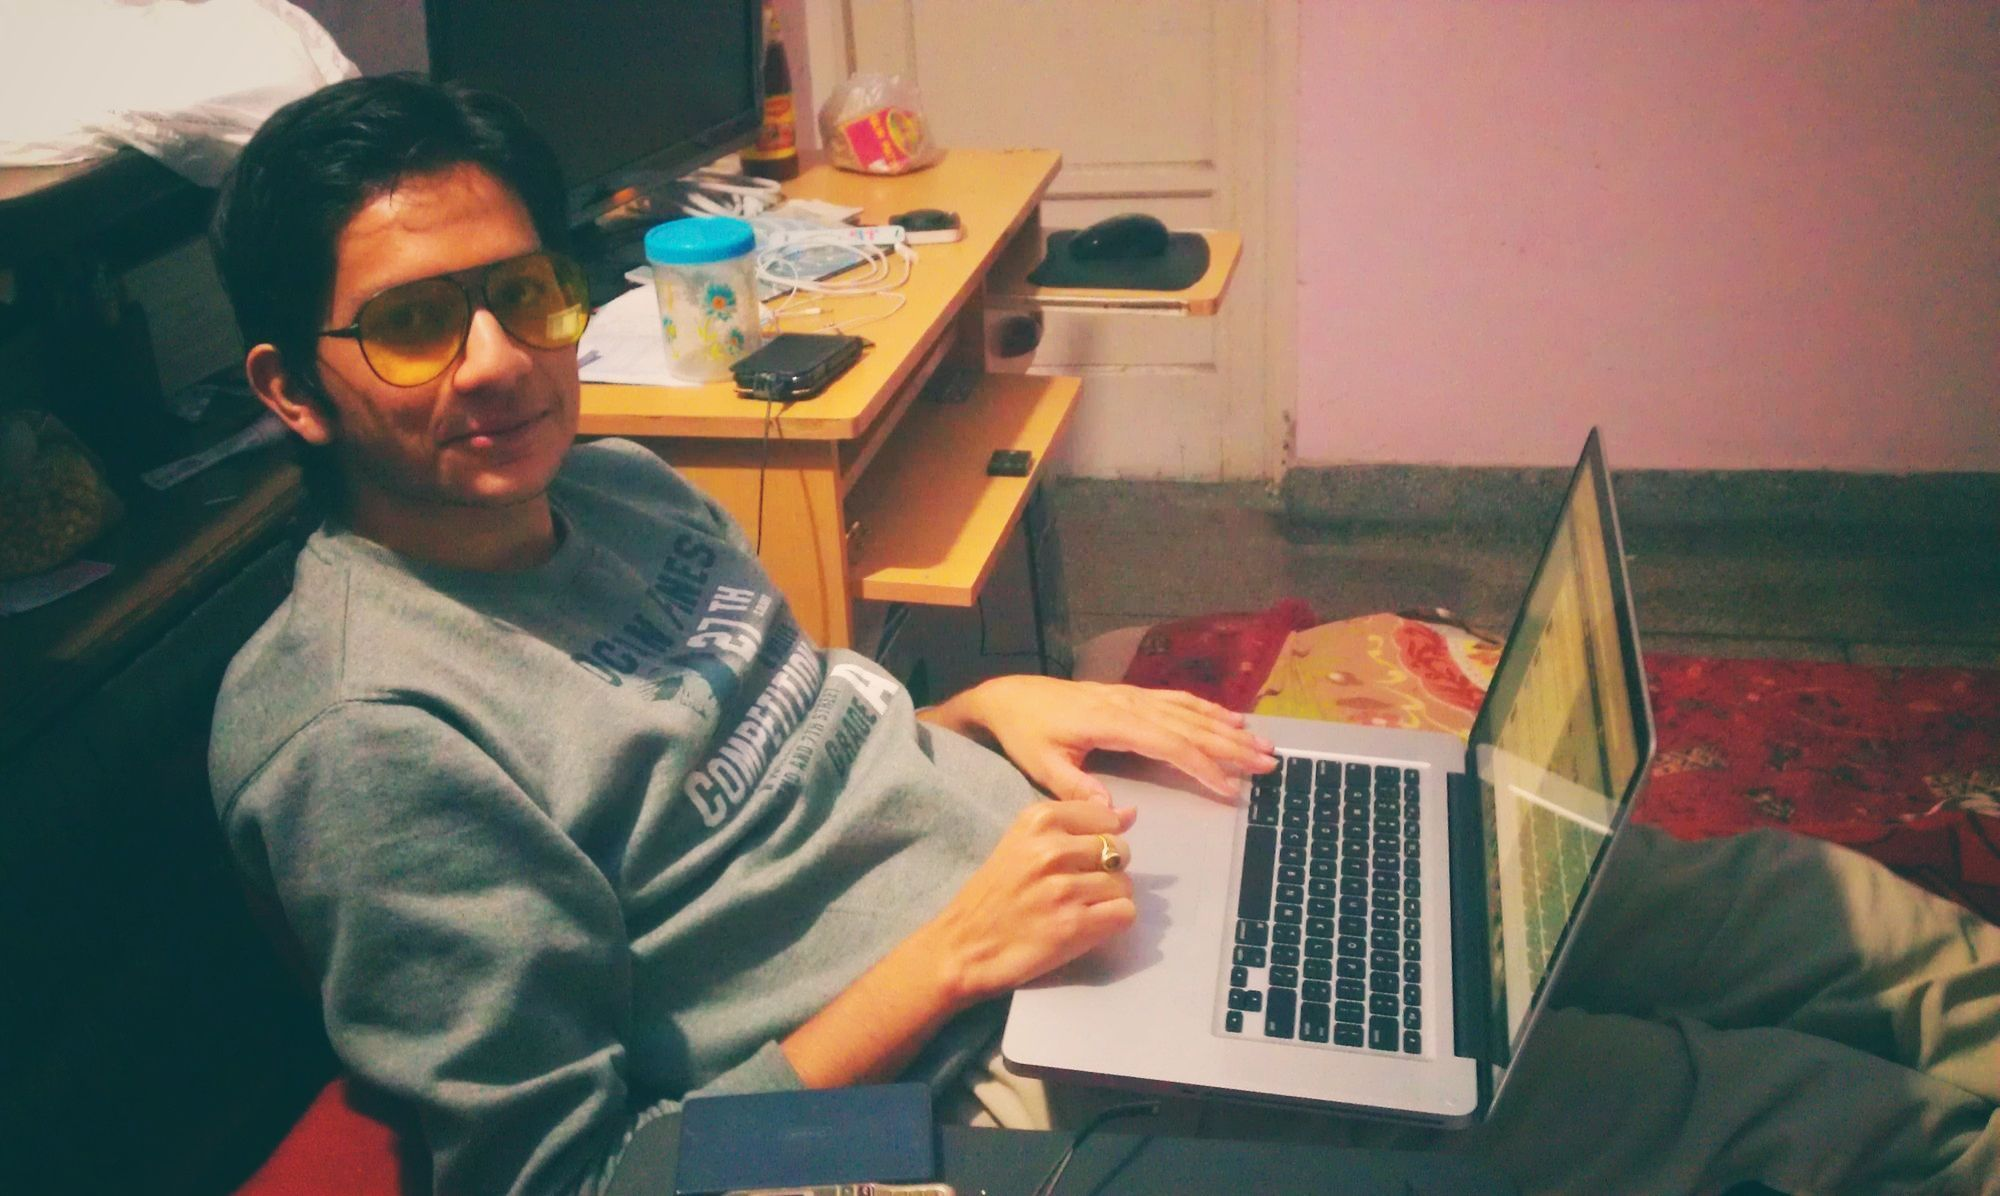 Tushar working on his MacBook in December 2011